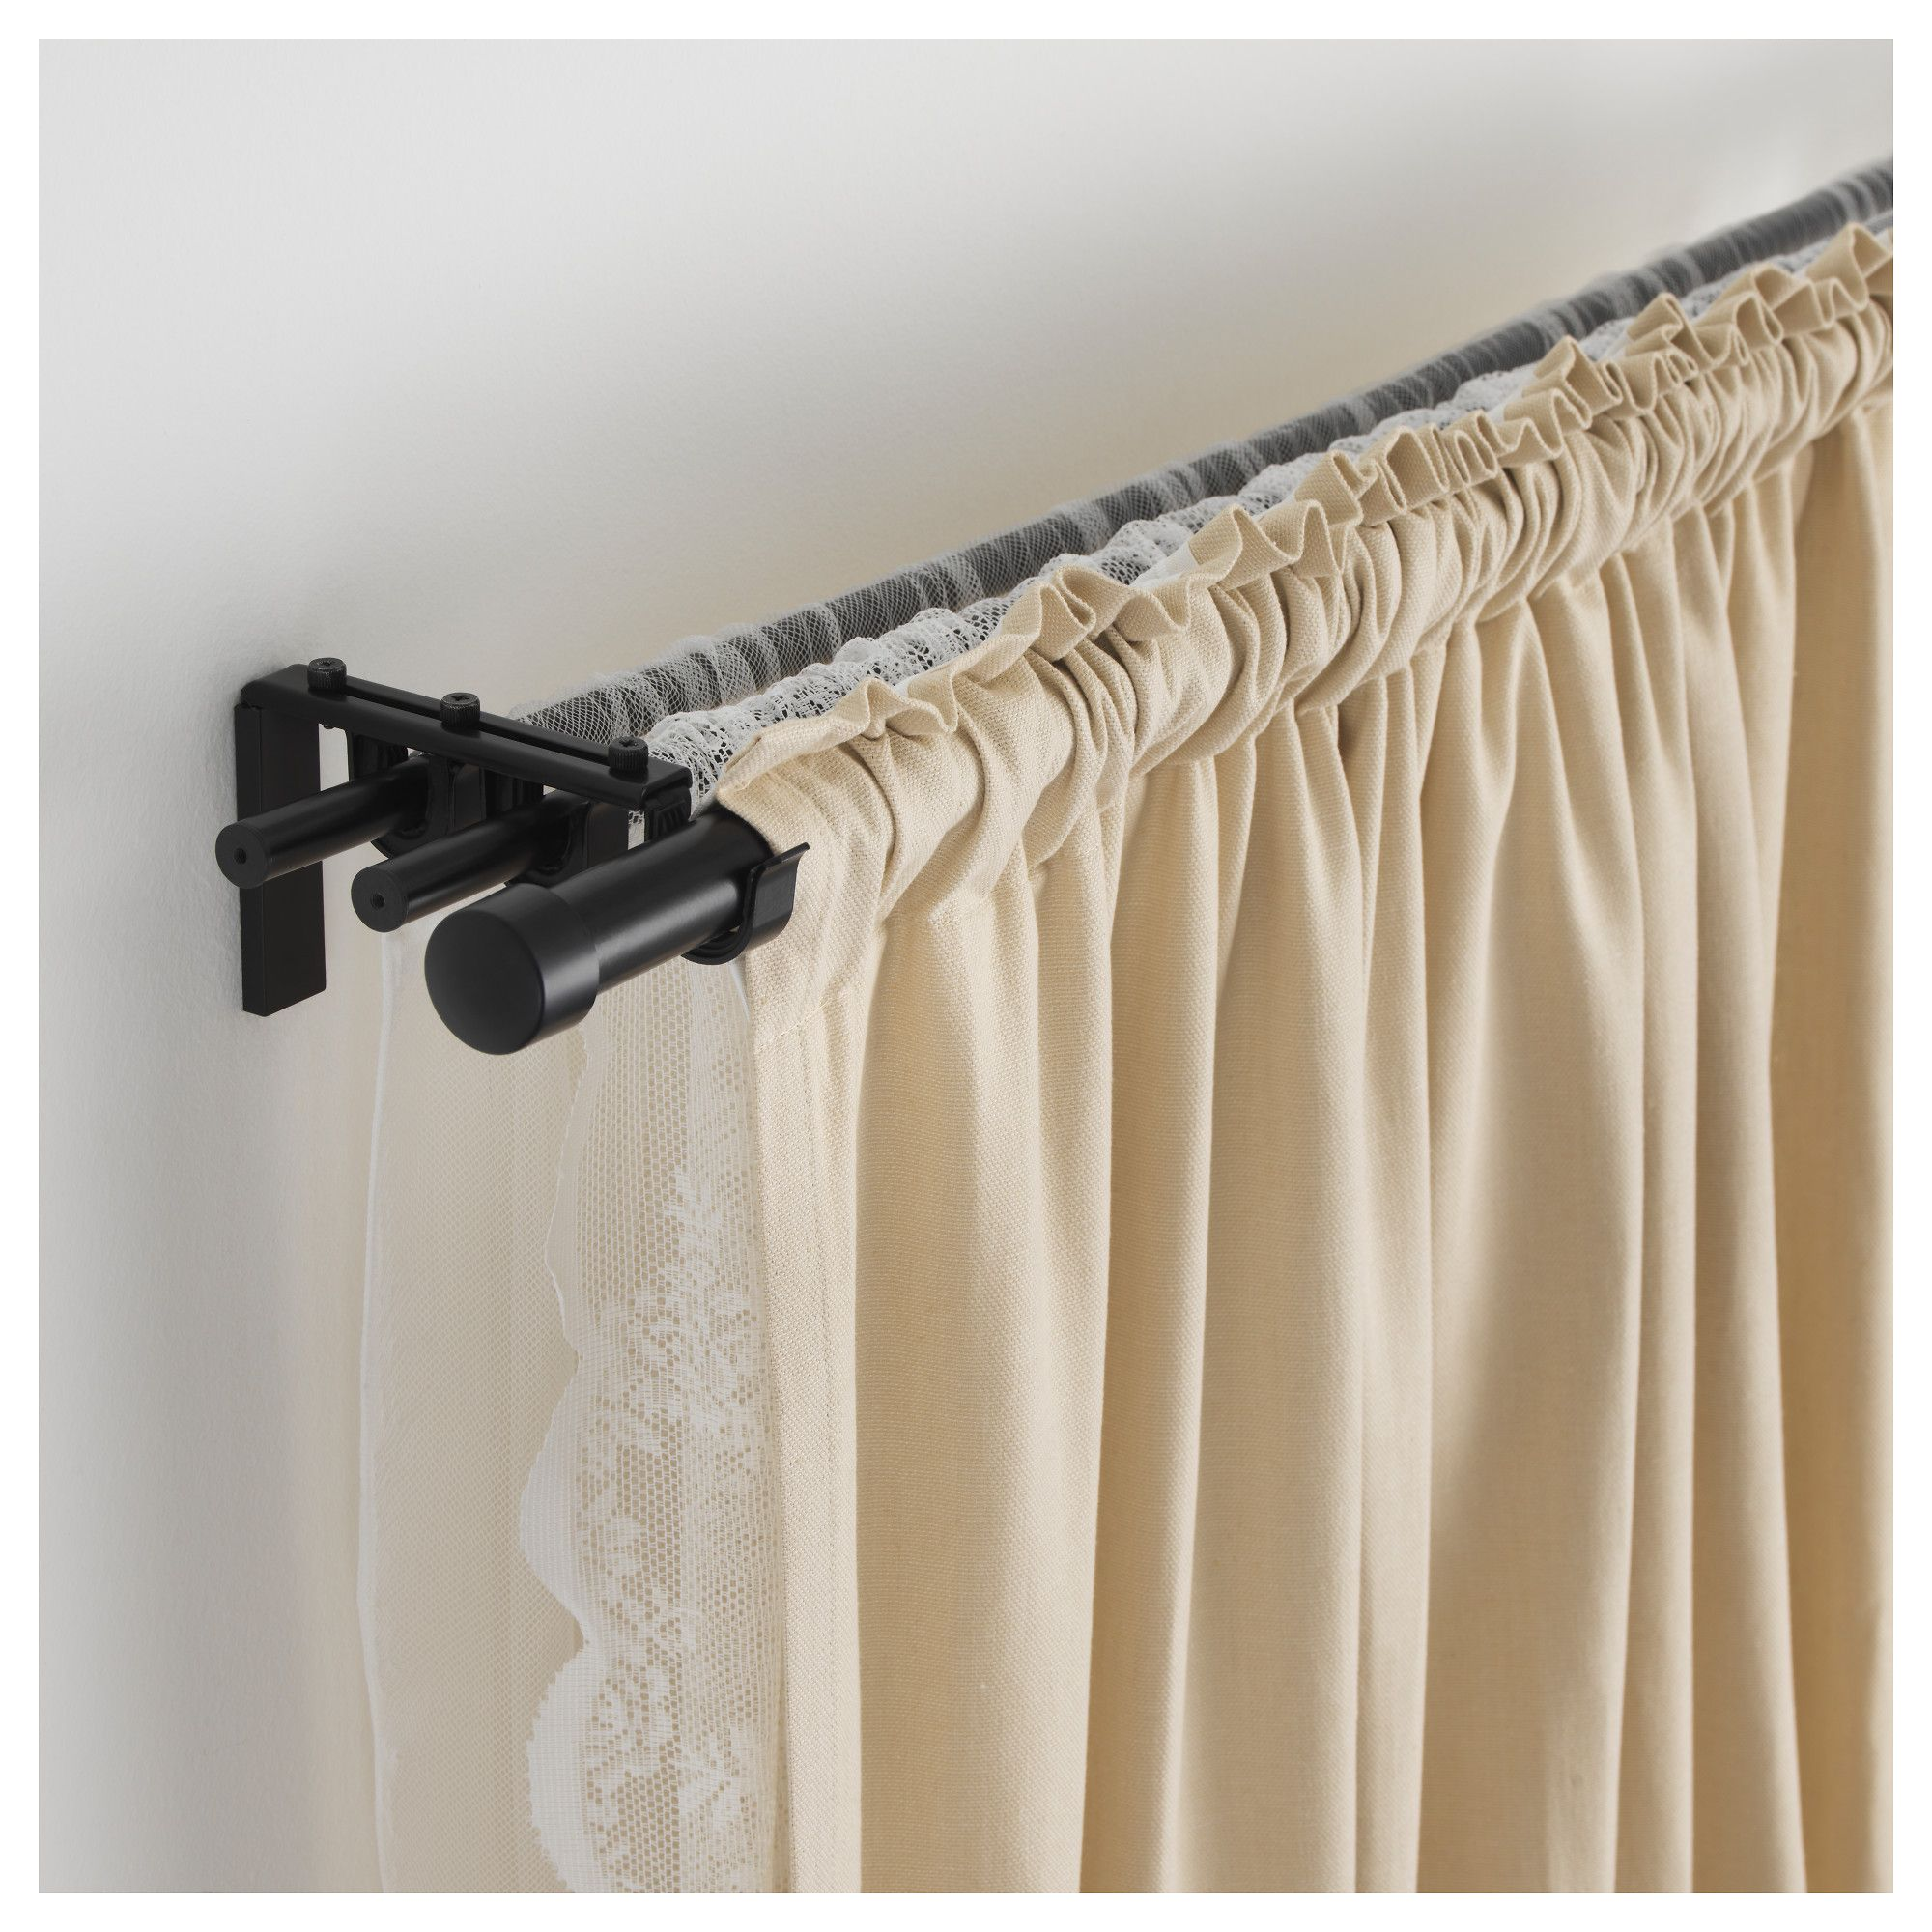 target uncategorized trend ikea and unbelievable rod popular the best rails for rods double inches curtain